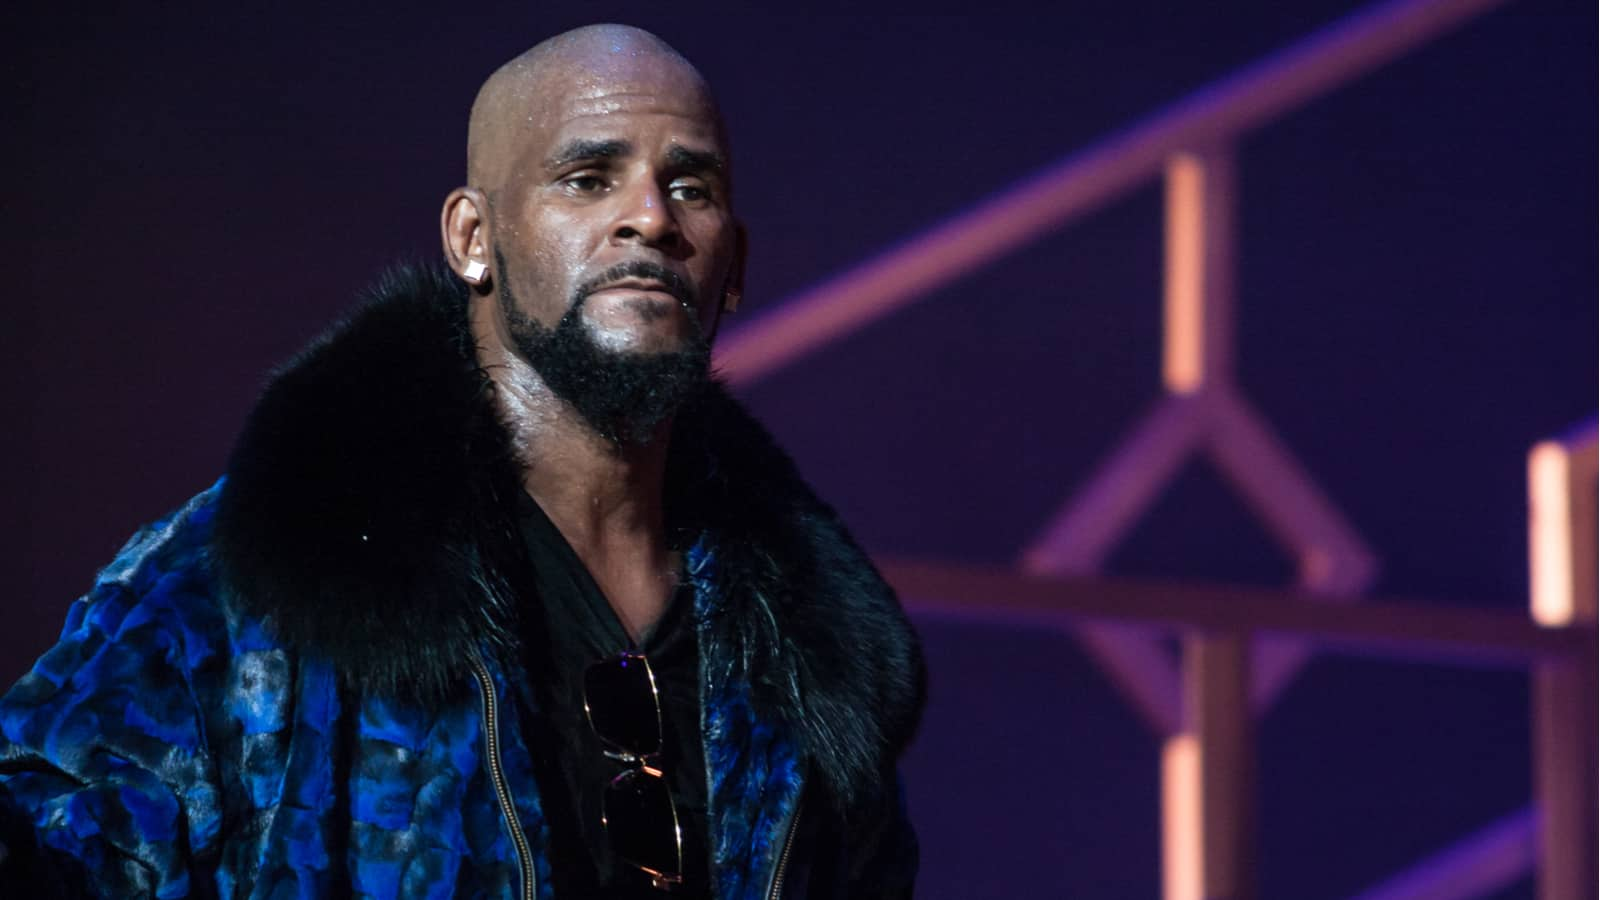 R. Kelly Dropped From Sony Music Following Lifetime Documentary